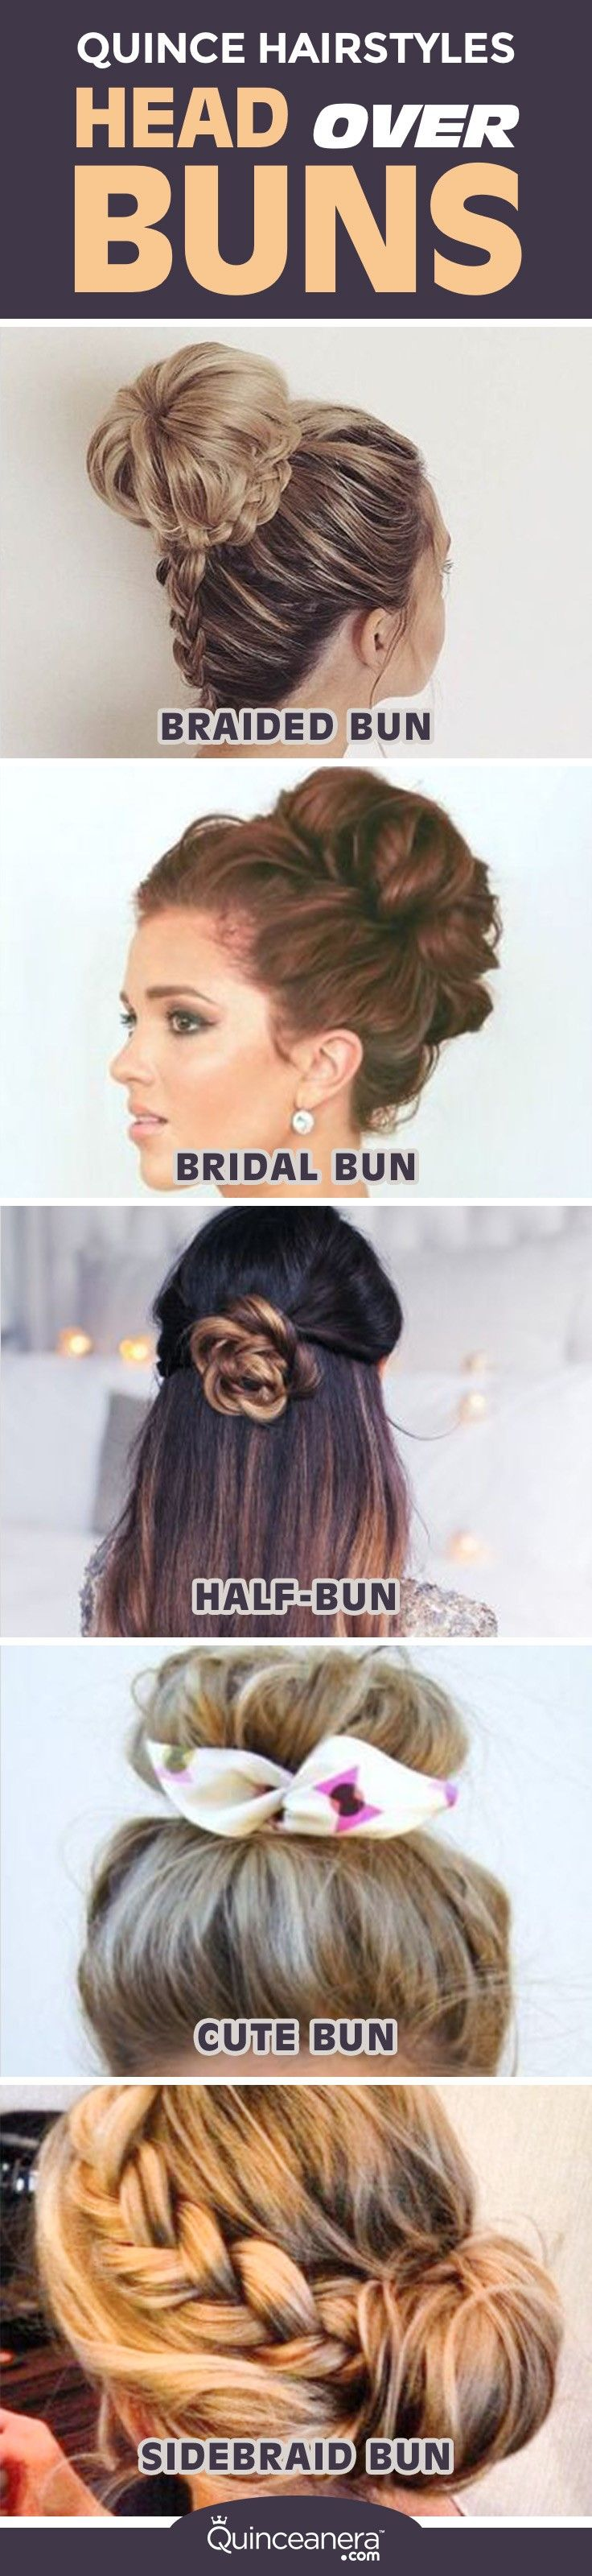 Hairstyles head over buns hair style campaign and articles